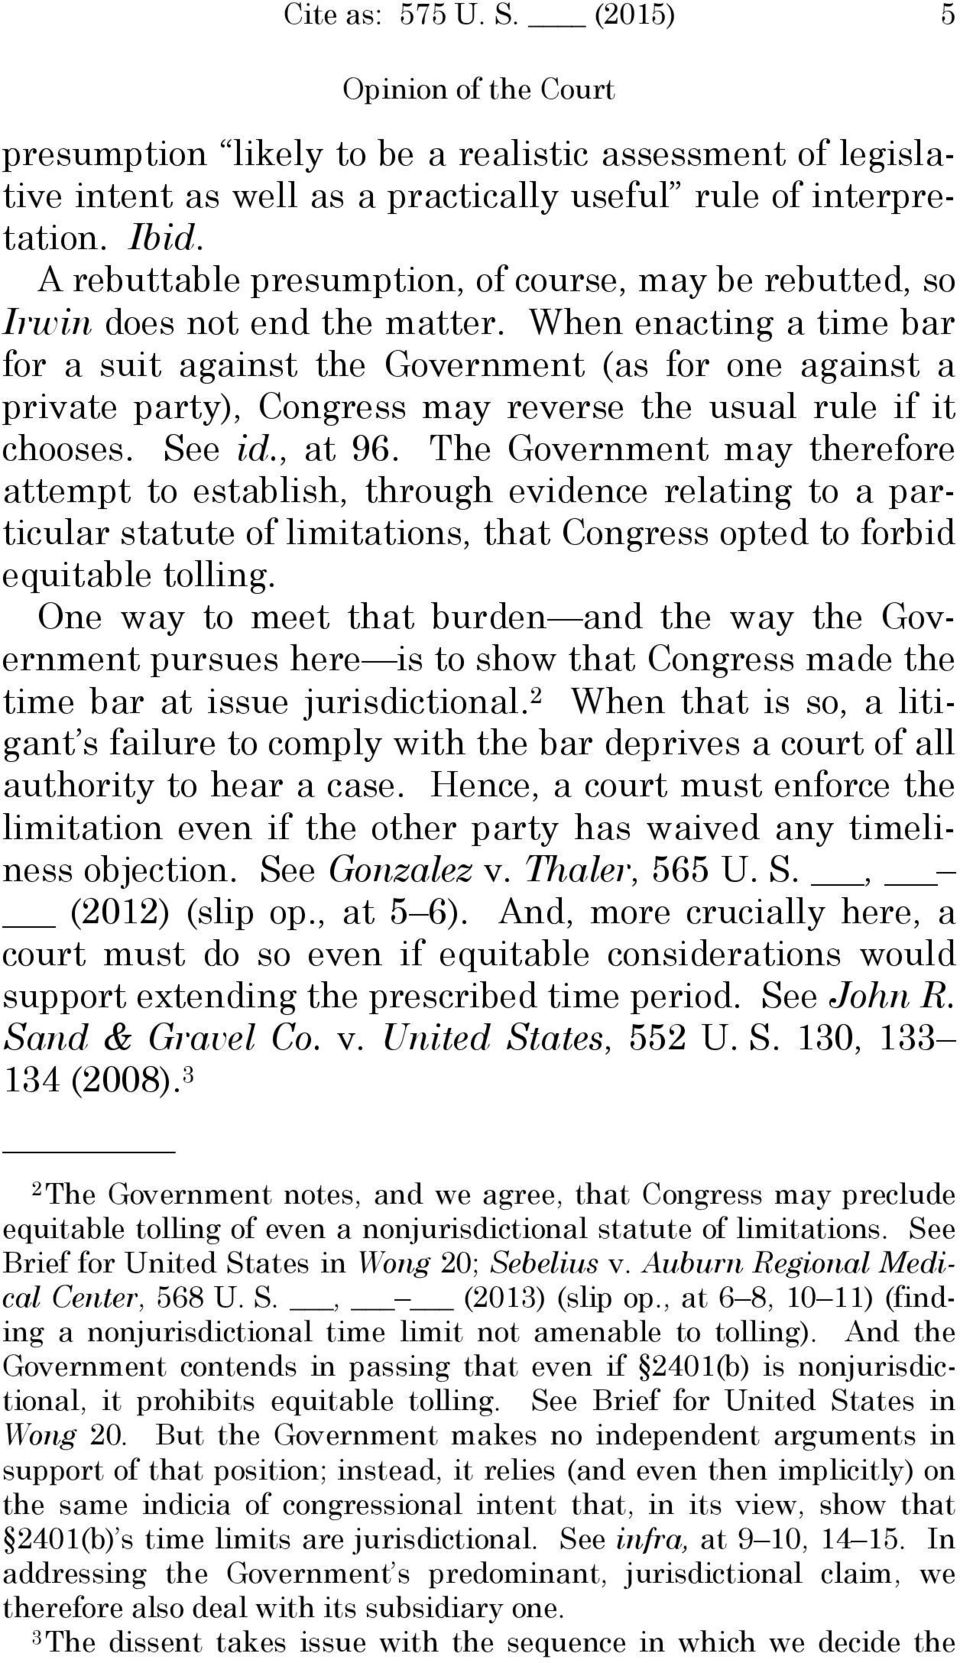 When enacting a time bar for a suit against the Government (as for one against a private party), Congress may reverse the usual rule if it chooses. See id., at 96.